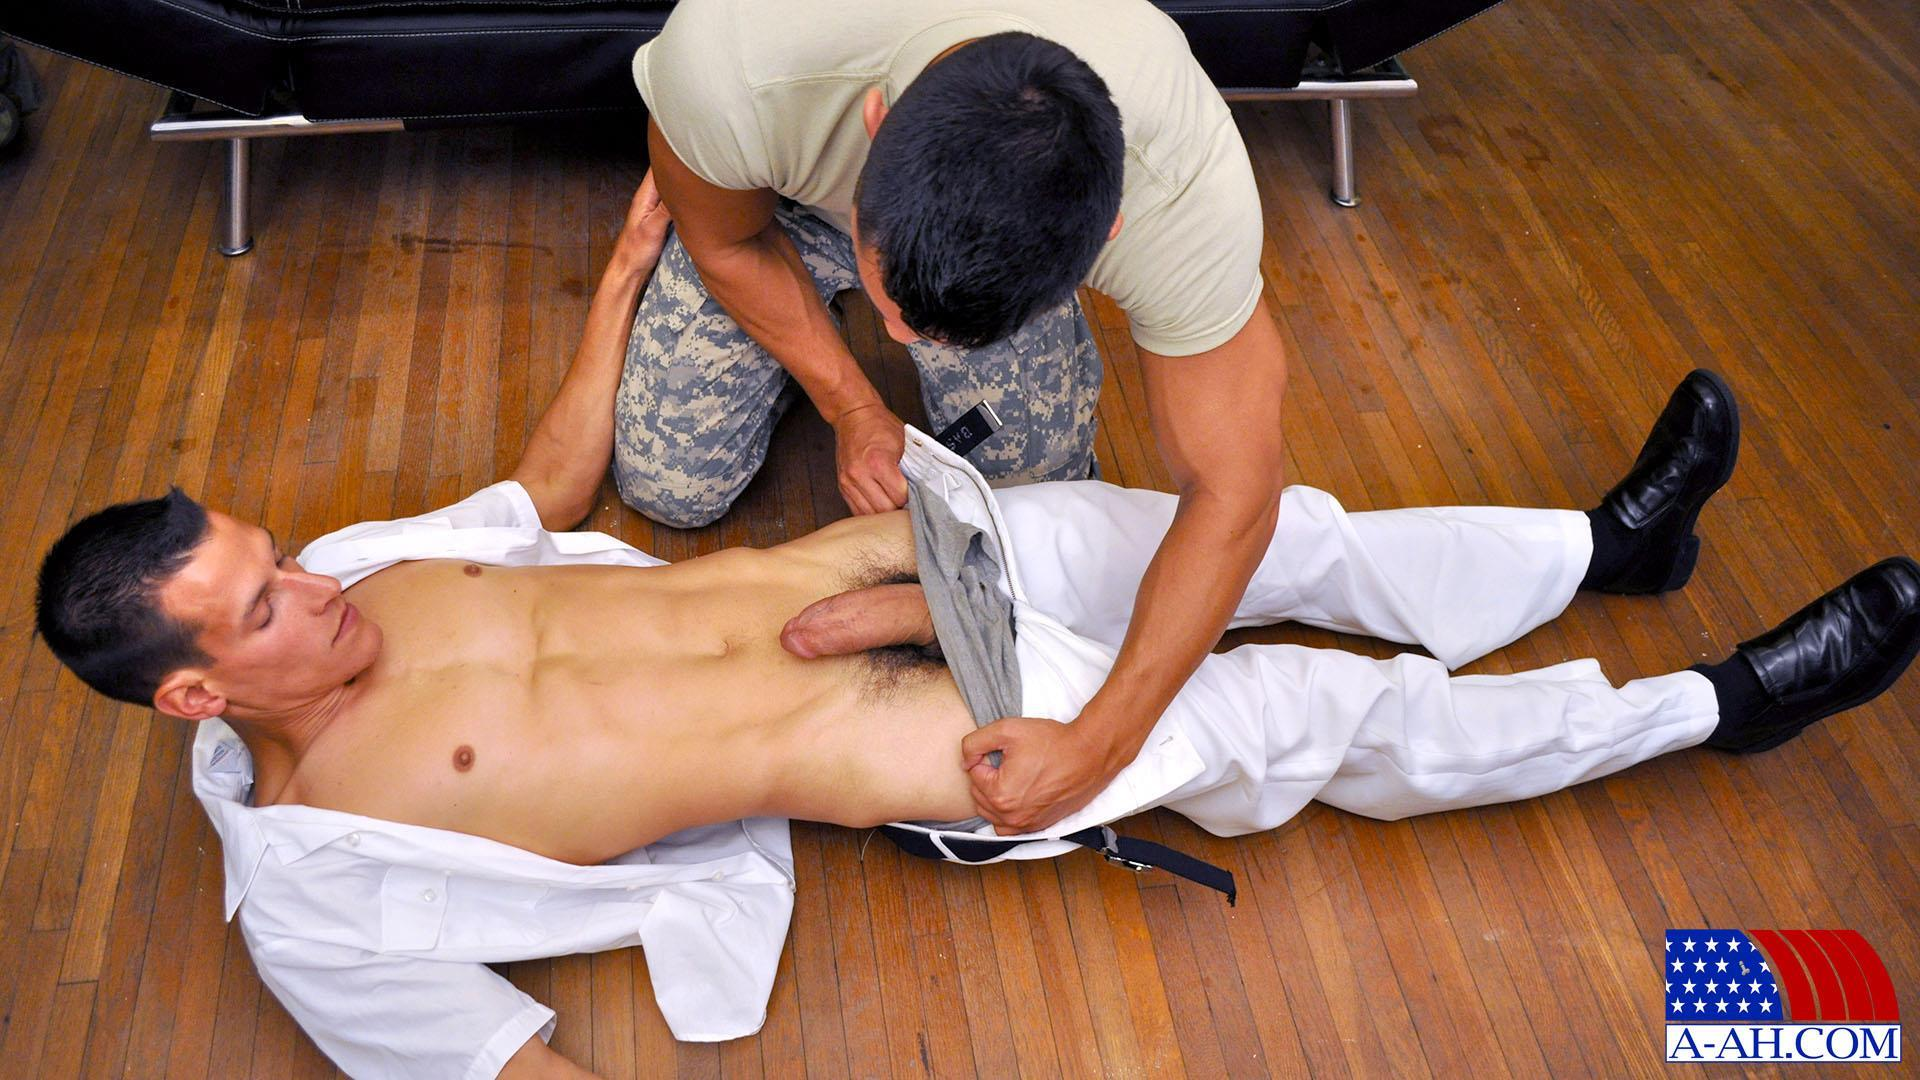 All American Heroes Navy Petty Officer Eddy Fucking Army Private Seth Big Cock Amateur Gay Porn 02 Navy Petty Officer Fucking An Army Private With His Big Cock